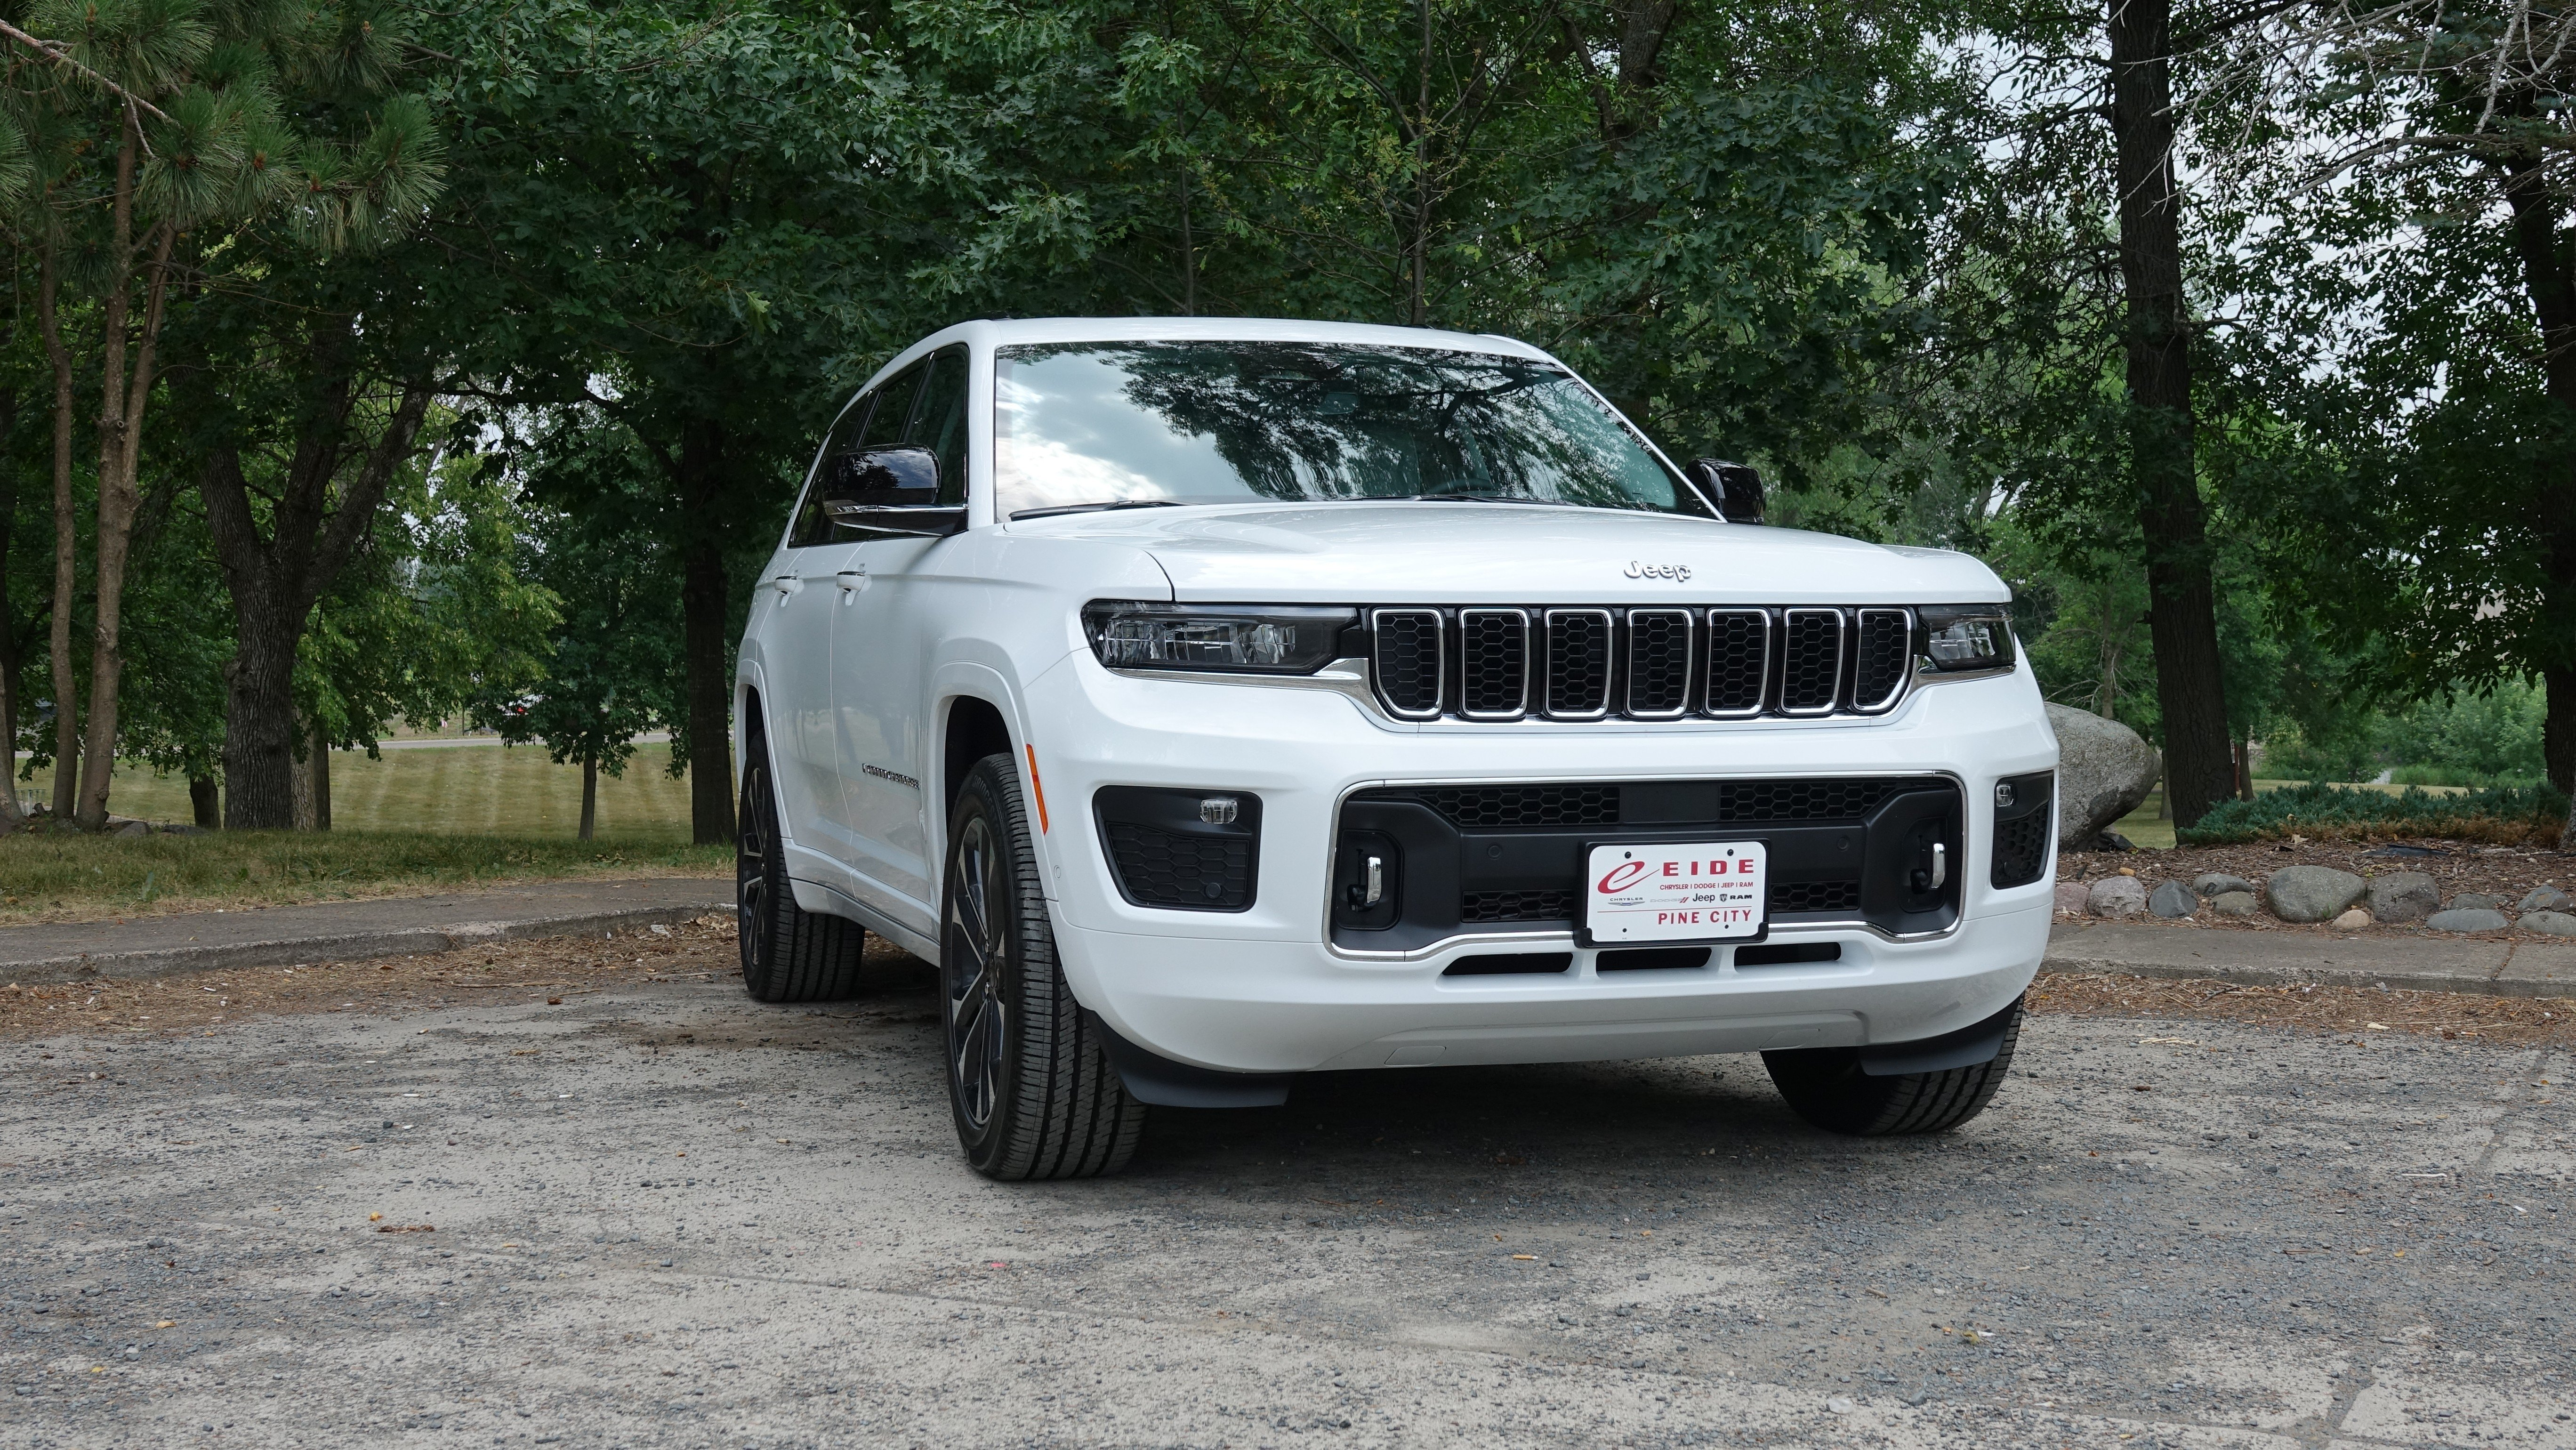 The 2021 Jeep Grand Cherokee L in Pine City